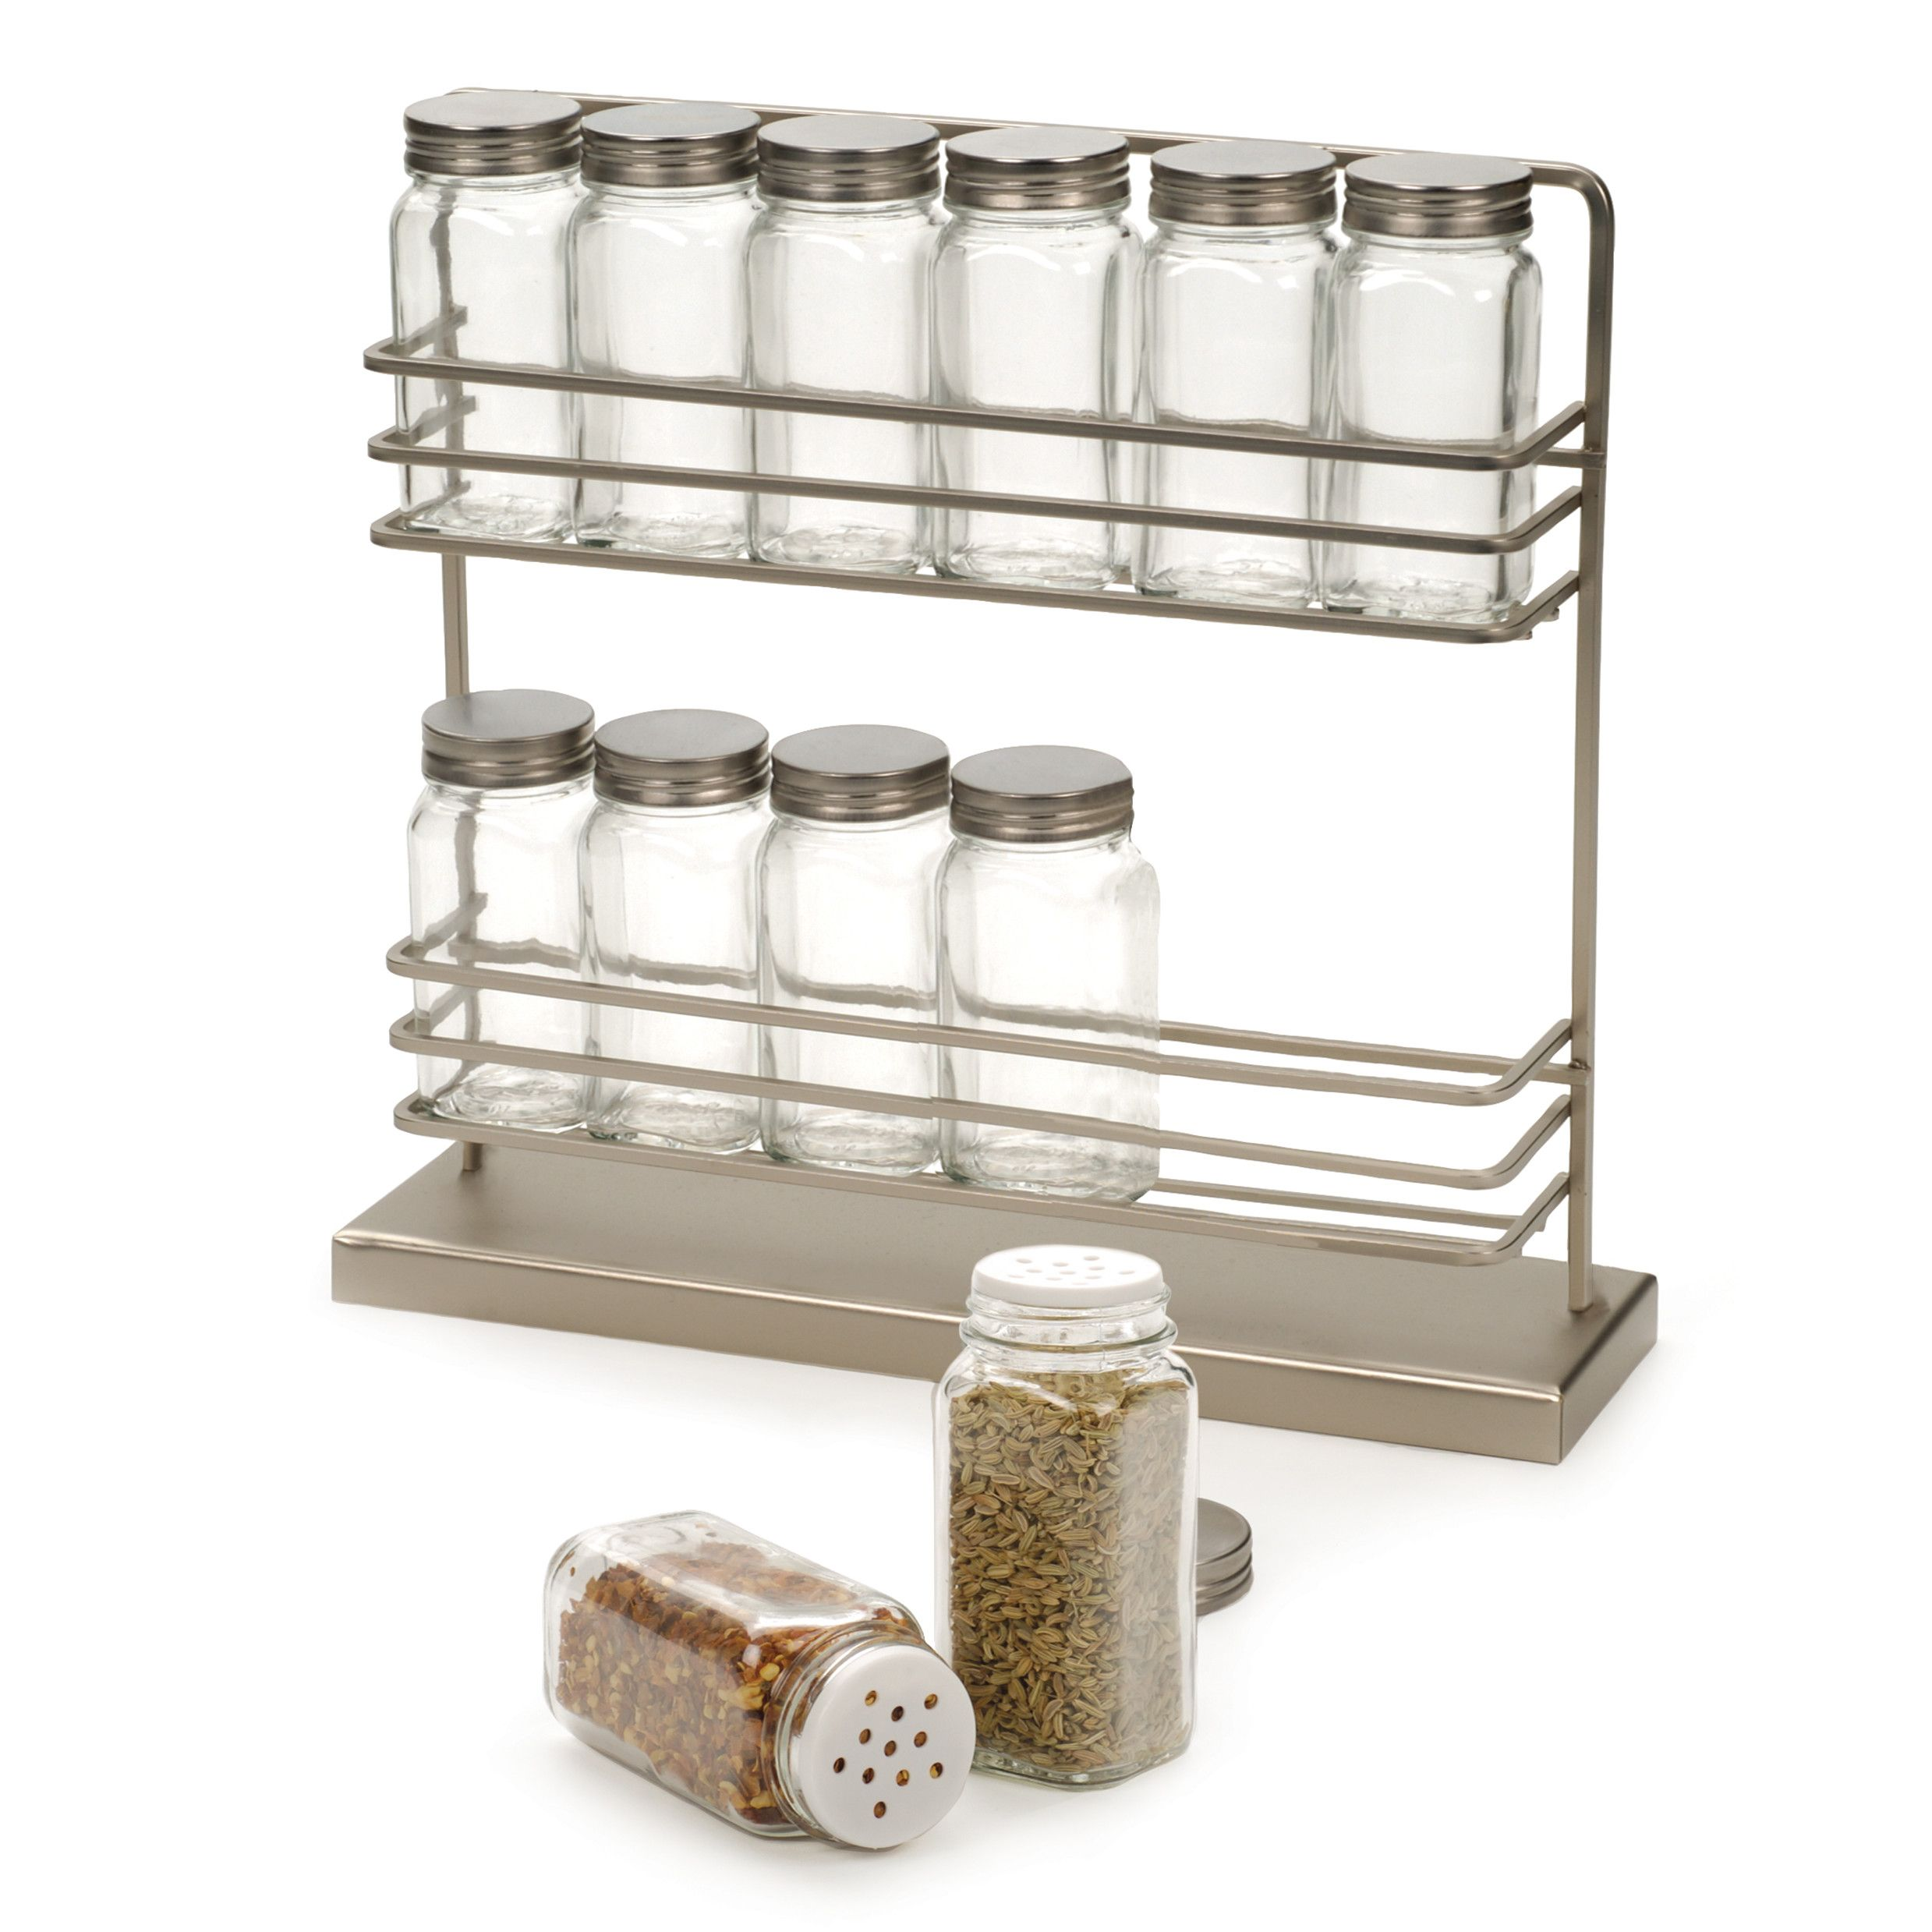 Rsvp Intl 13 Piece 2 Tier Counter Spice Rack Set Countertop Spice Rack Spice Rack Wooden Spice Rack